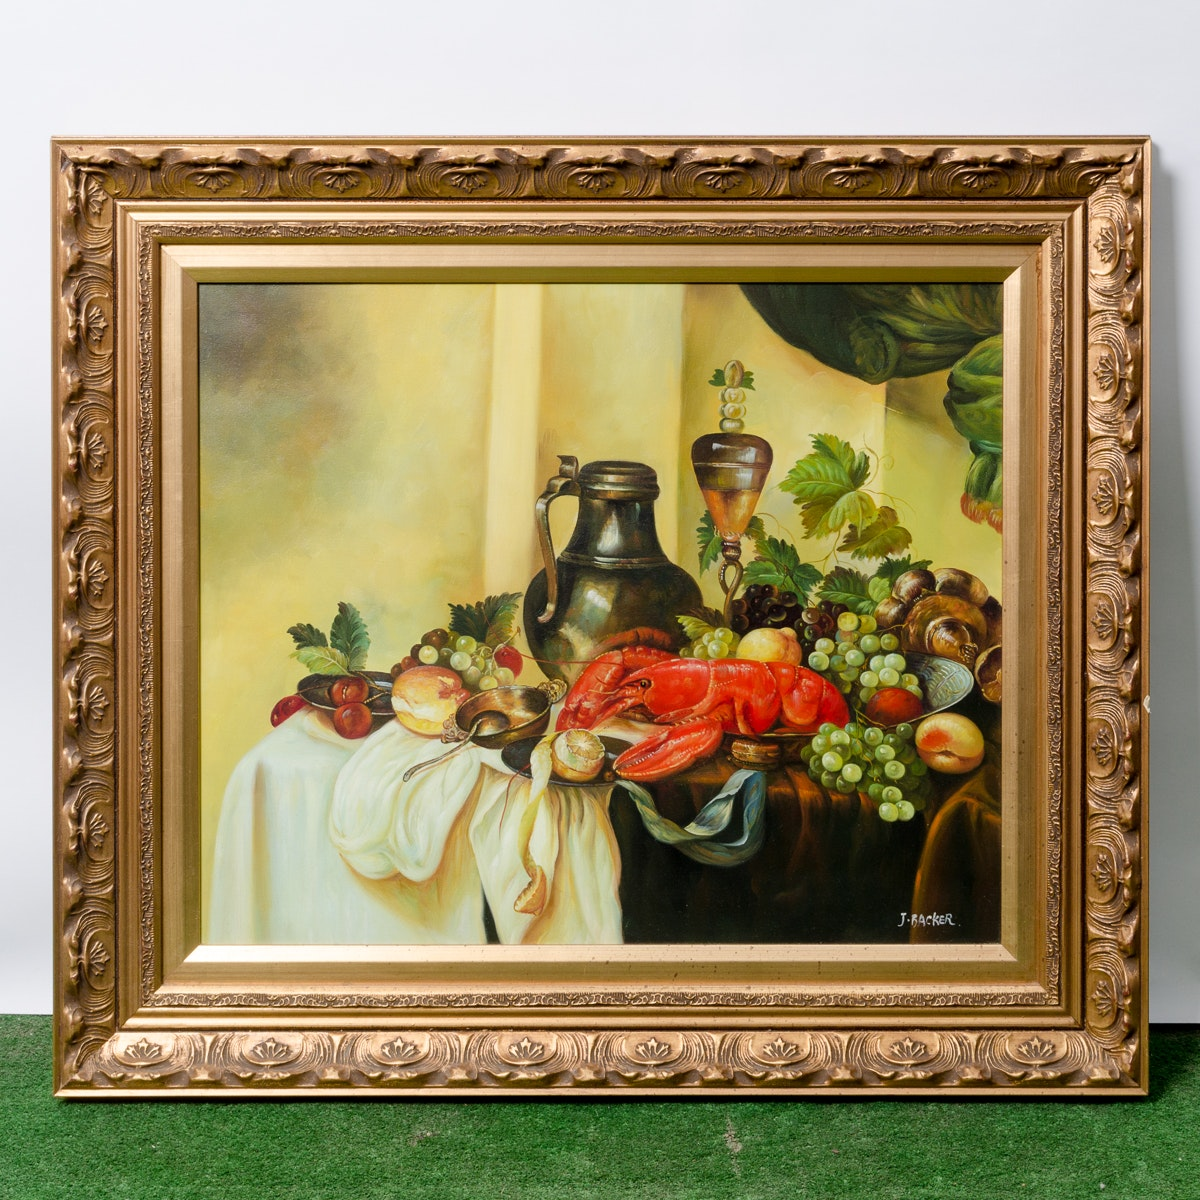 J. Backer Contemporary Oil Painting of Still Life with Fruit and Lobster